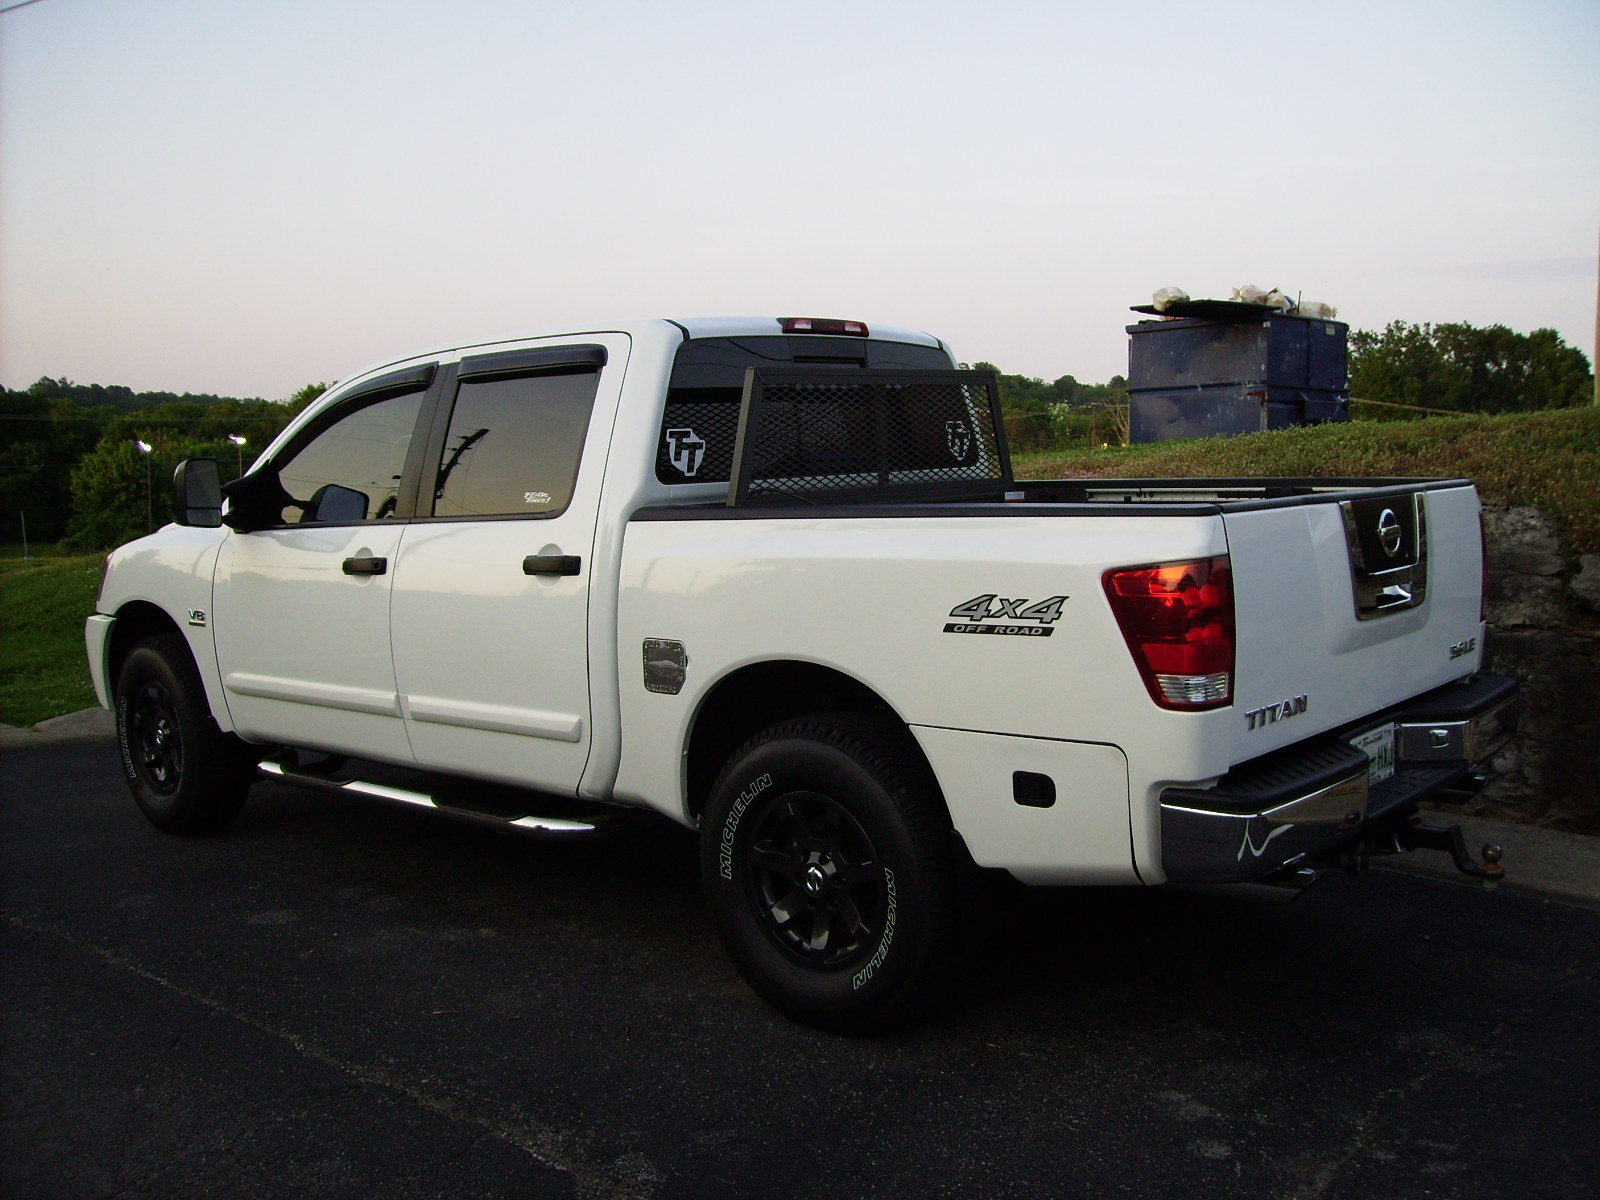 Truck before and after shocks, door handles and detail-truck-leveled-detailed-007.jpg